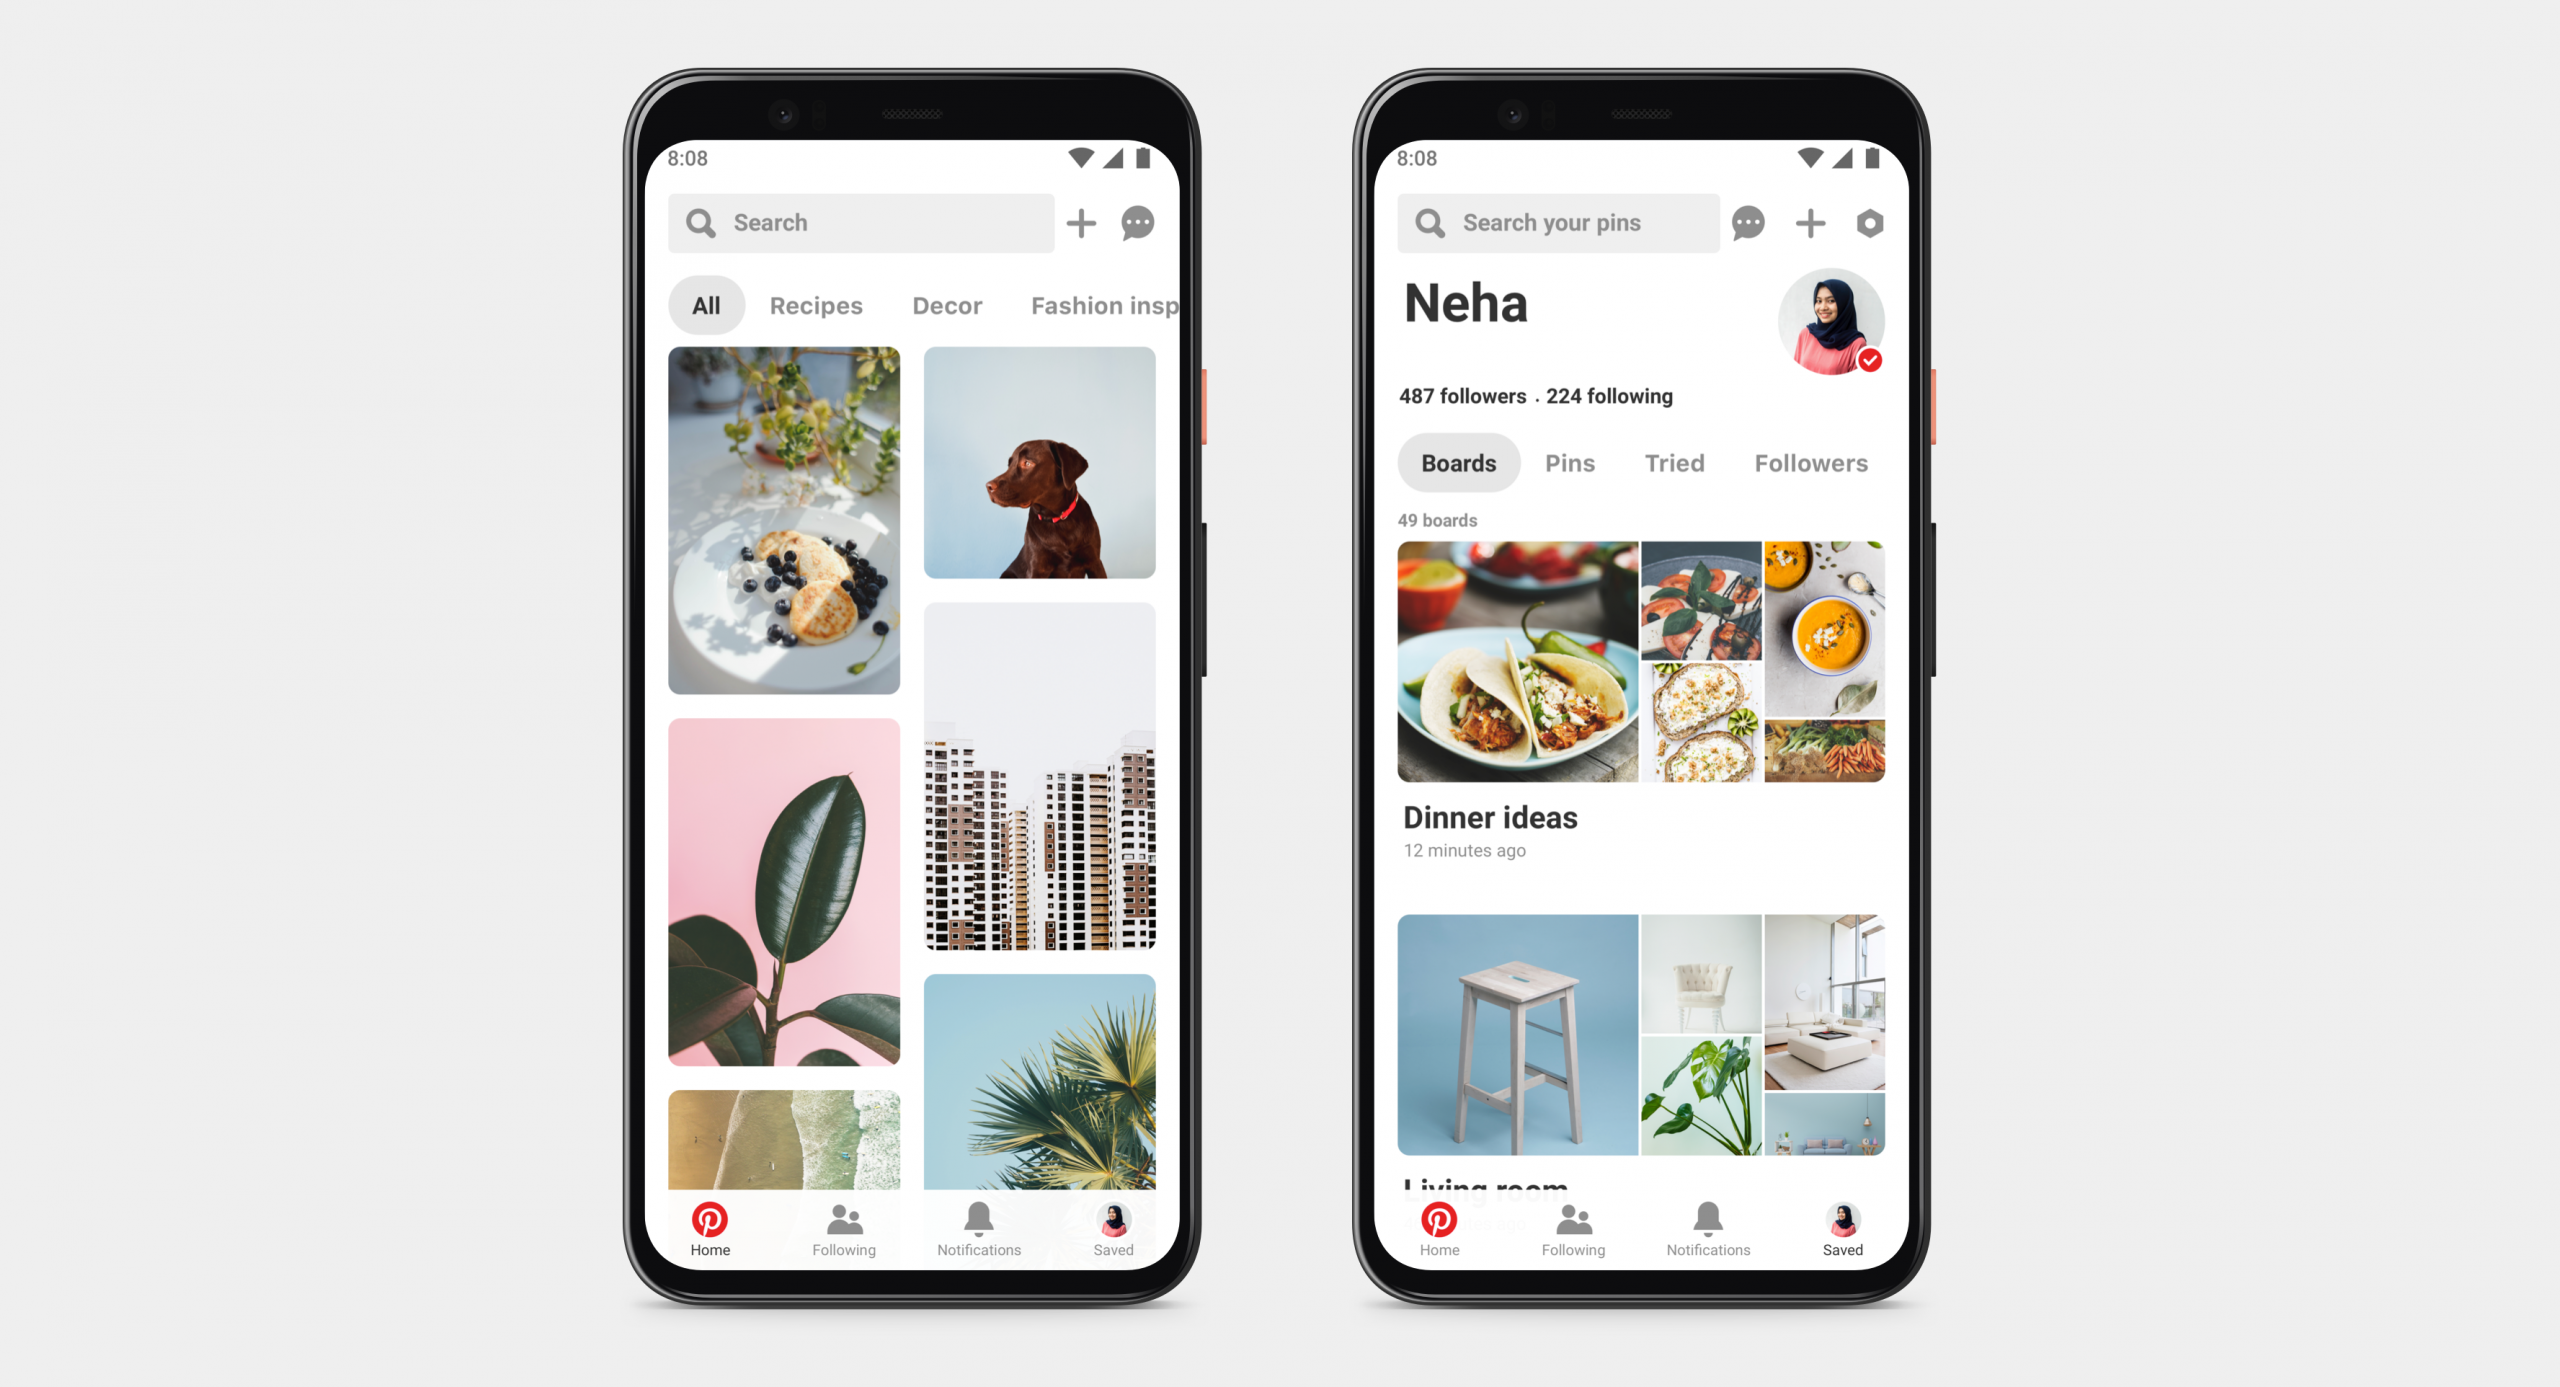 Example of Pinterest's mobile design